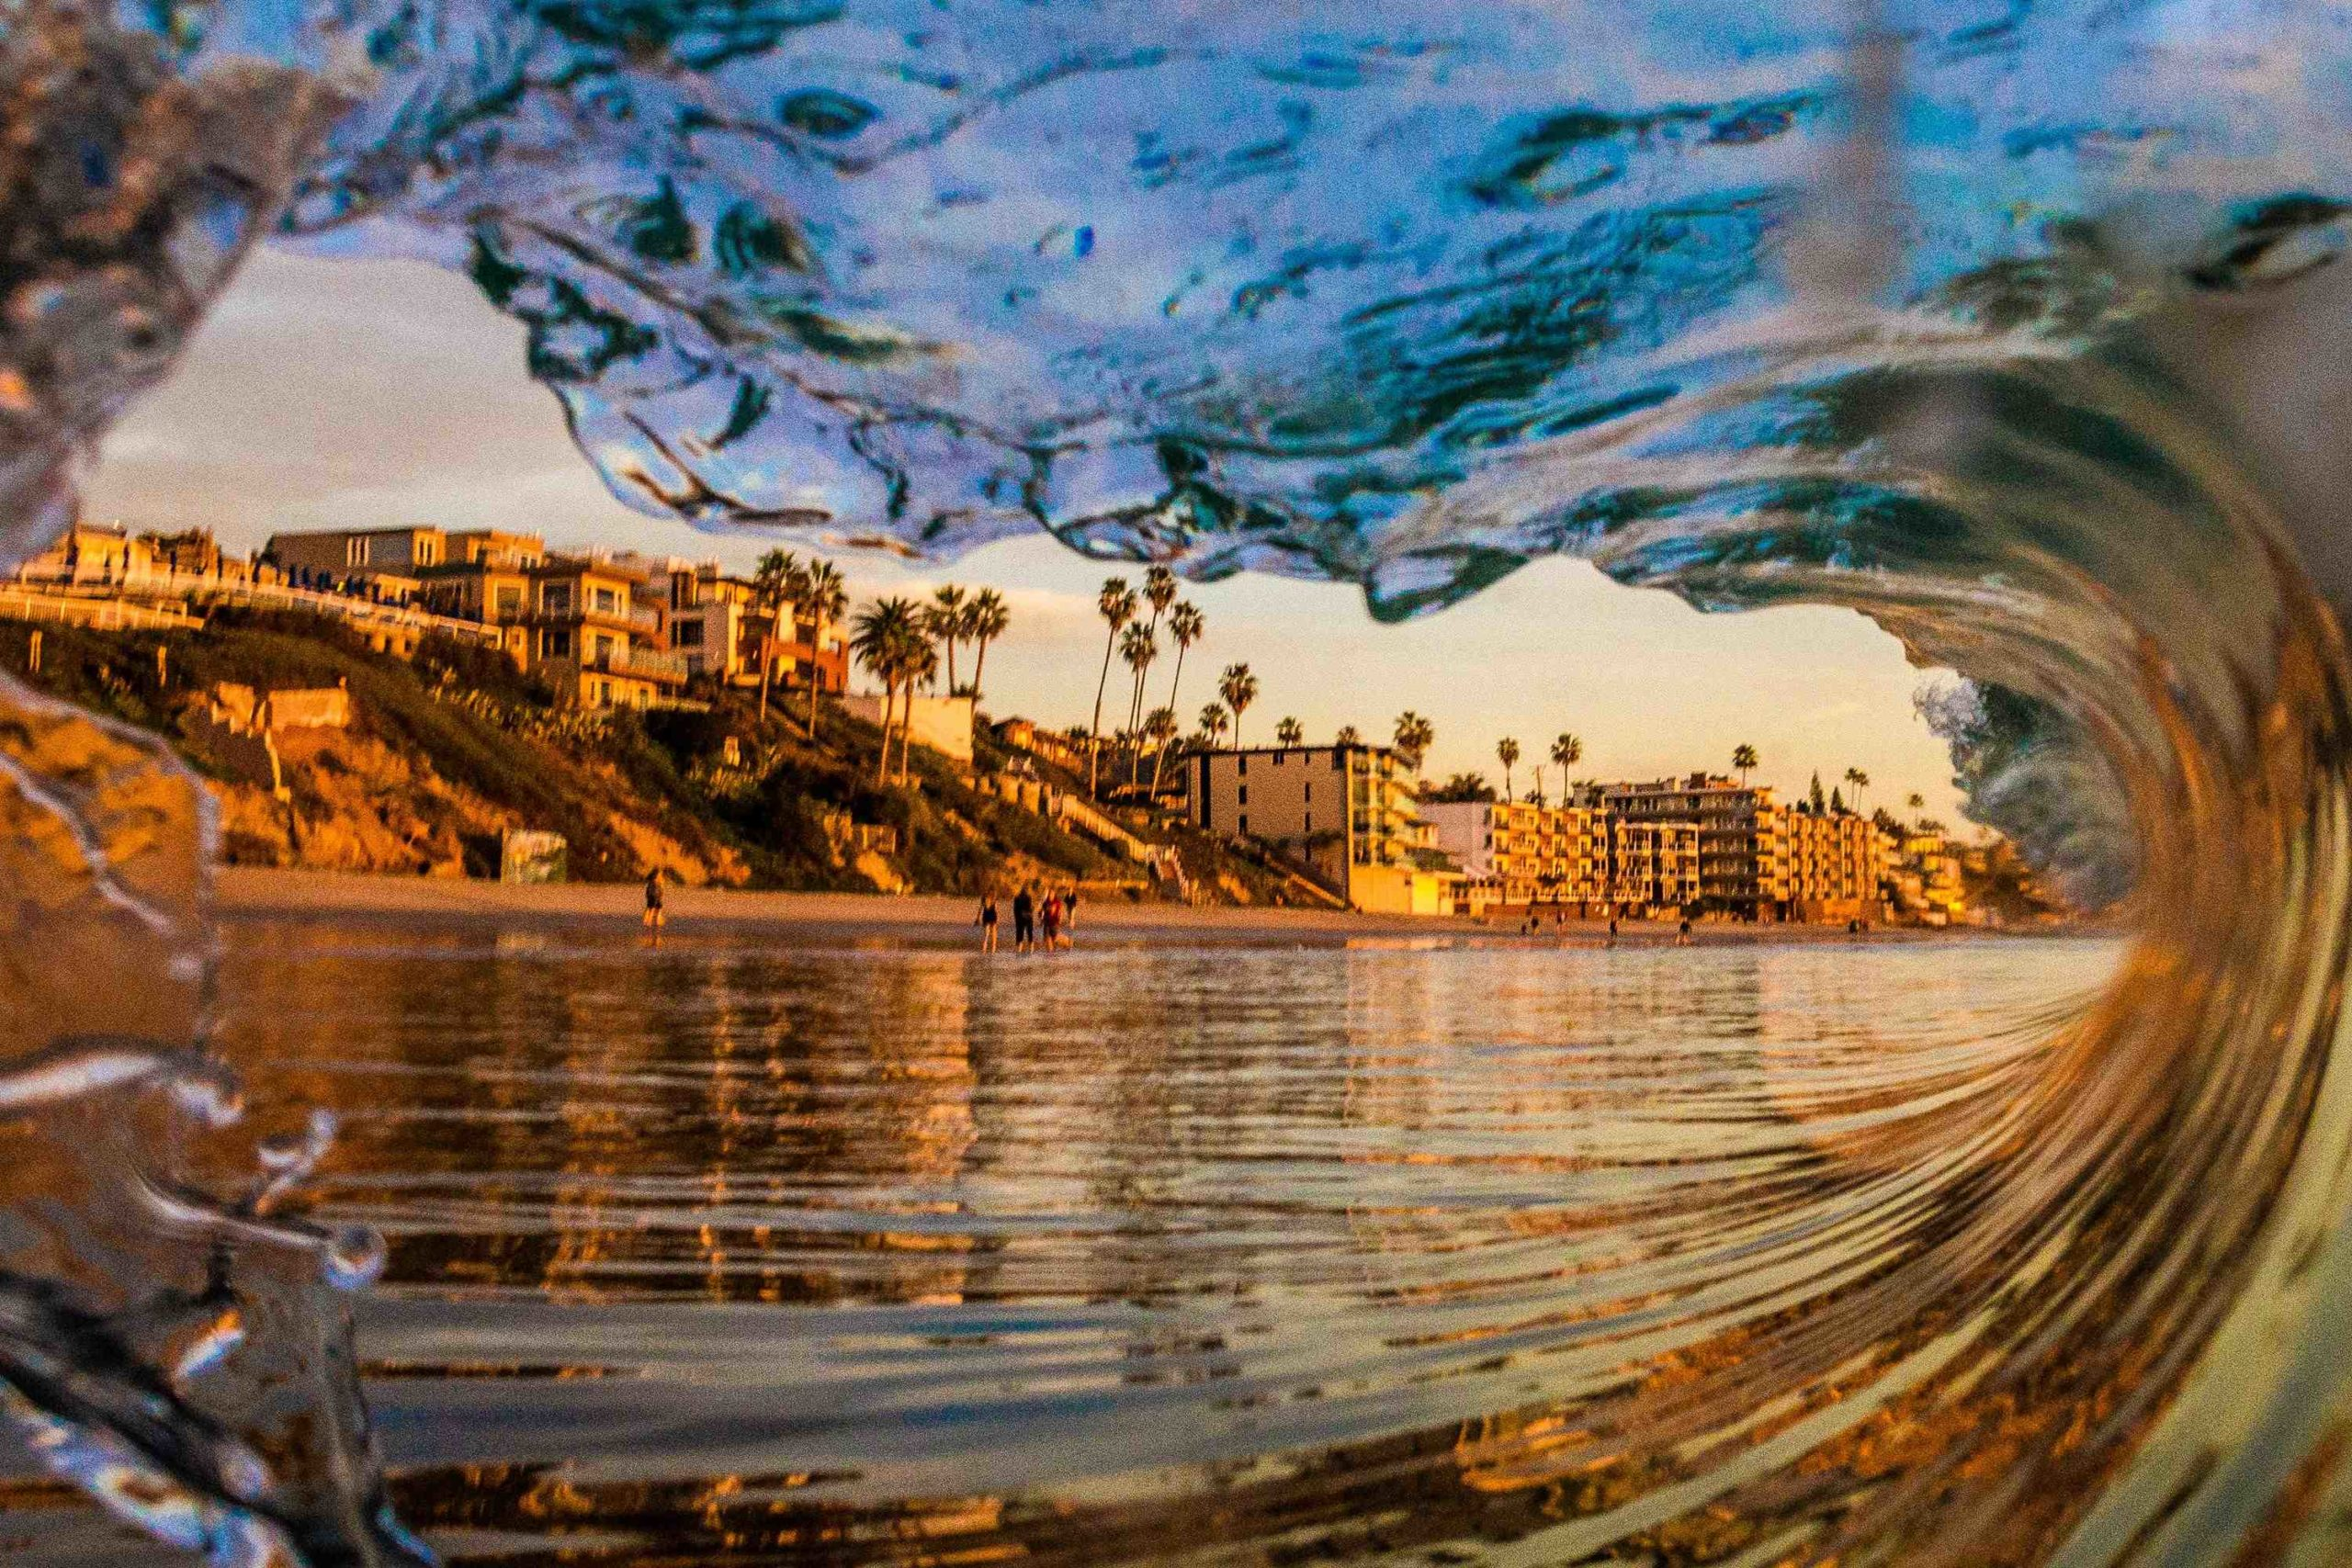 What is La Jolla known for?